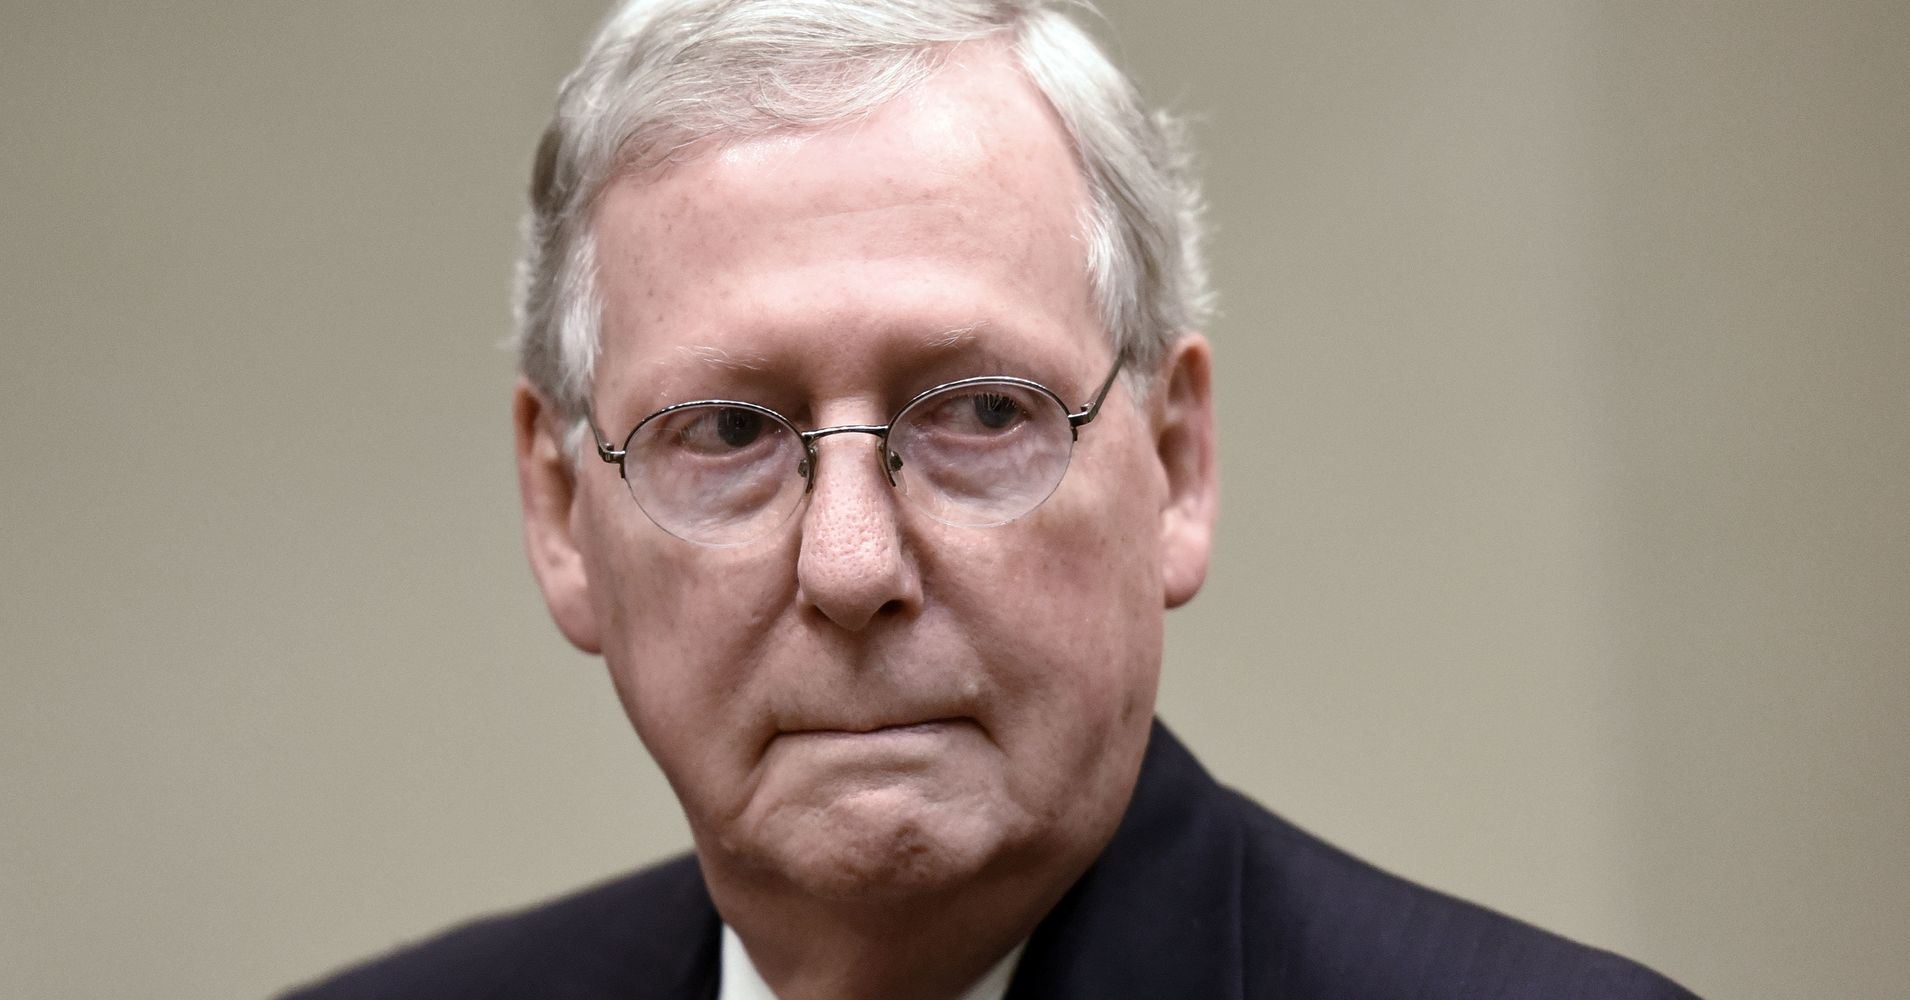 Republicans Might Actually Defund Planned Parenthood This Time